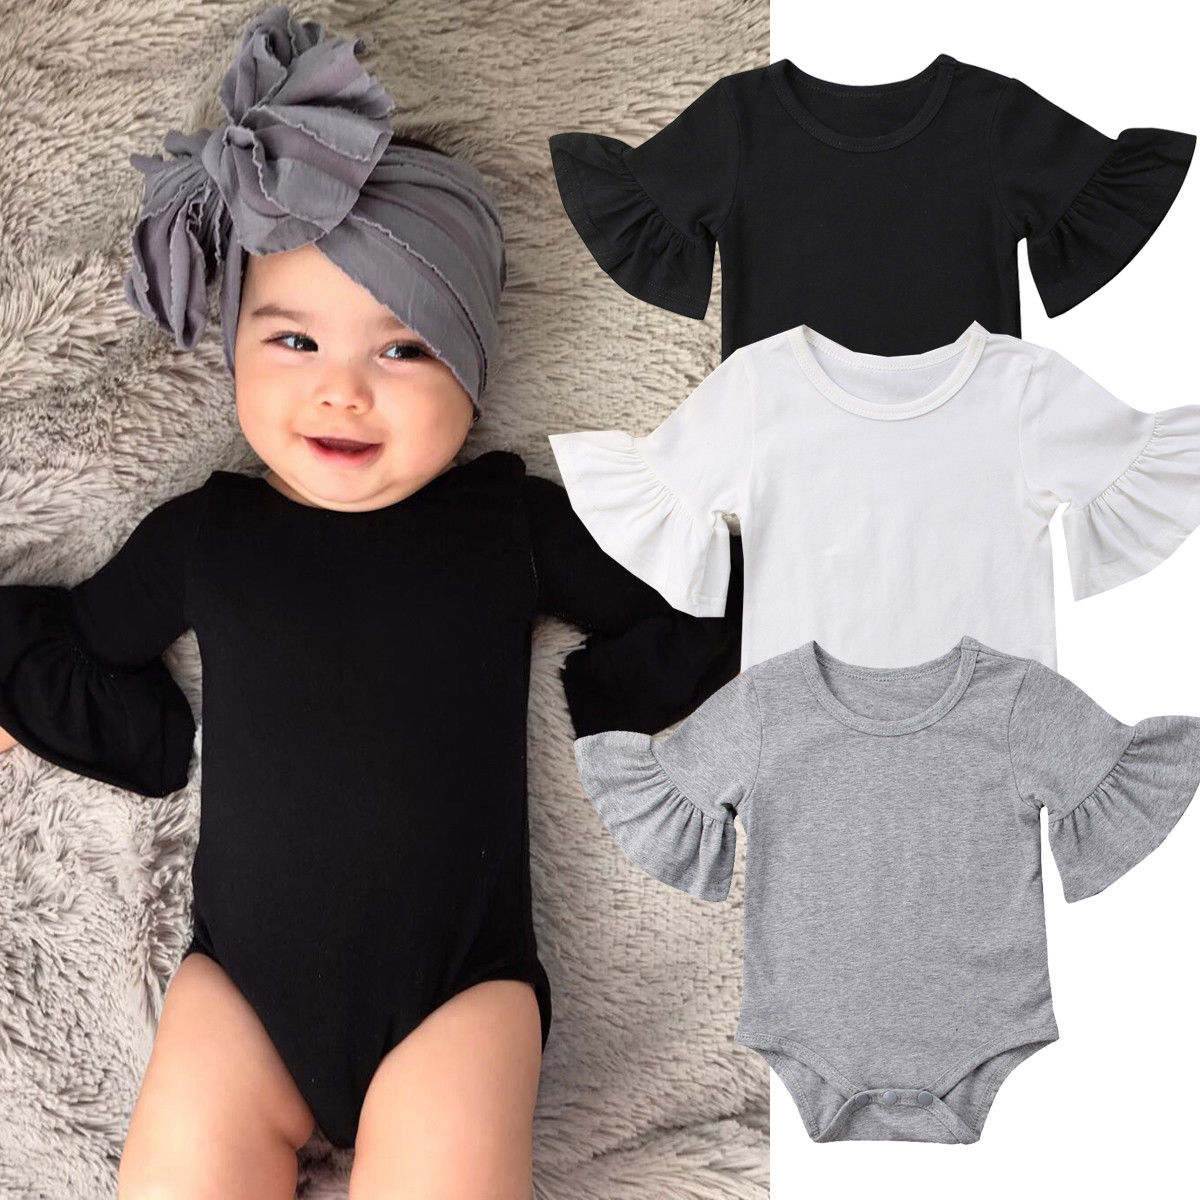 Baby Solid Cotton Flare Sleeve Bodysuits Newborn Infant Babies Girls Princess Clothes Bodysuit Sunsuit Summer Outfits 0-24M